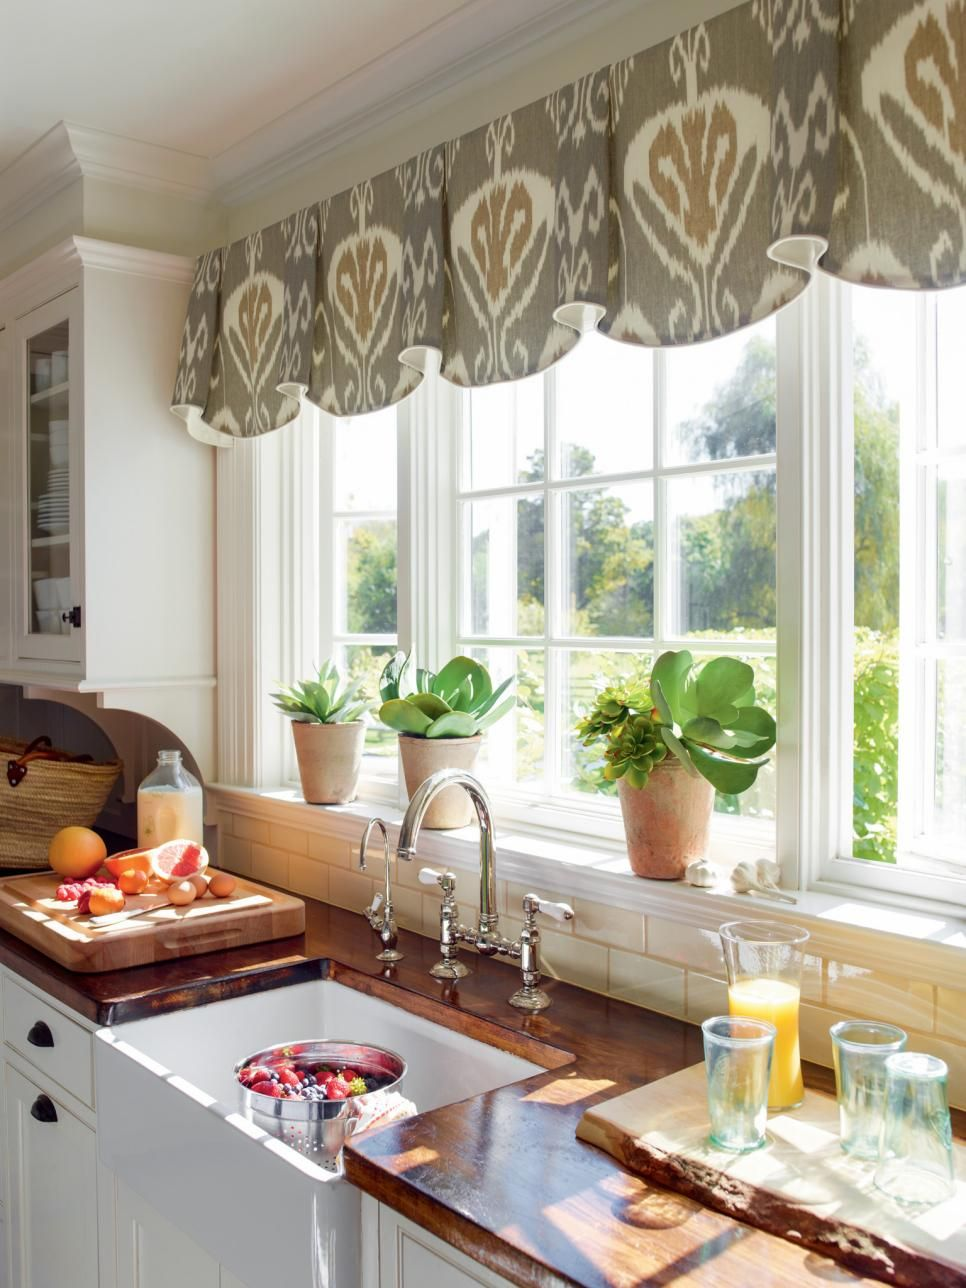 kitchen window valance ikea base cabinets 10 stylish treatment ideas fabulous windows in a with simple style and mostly white color palette splash of pattern can add personality help frame beautiful view